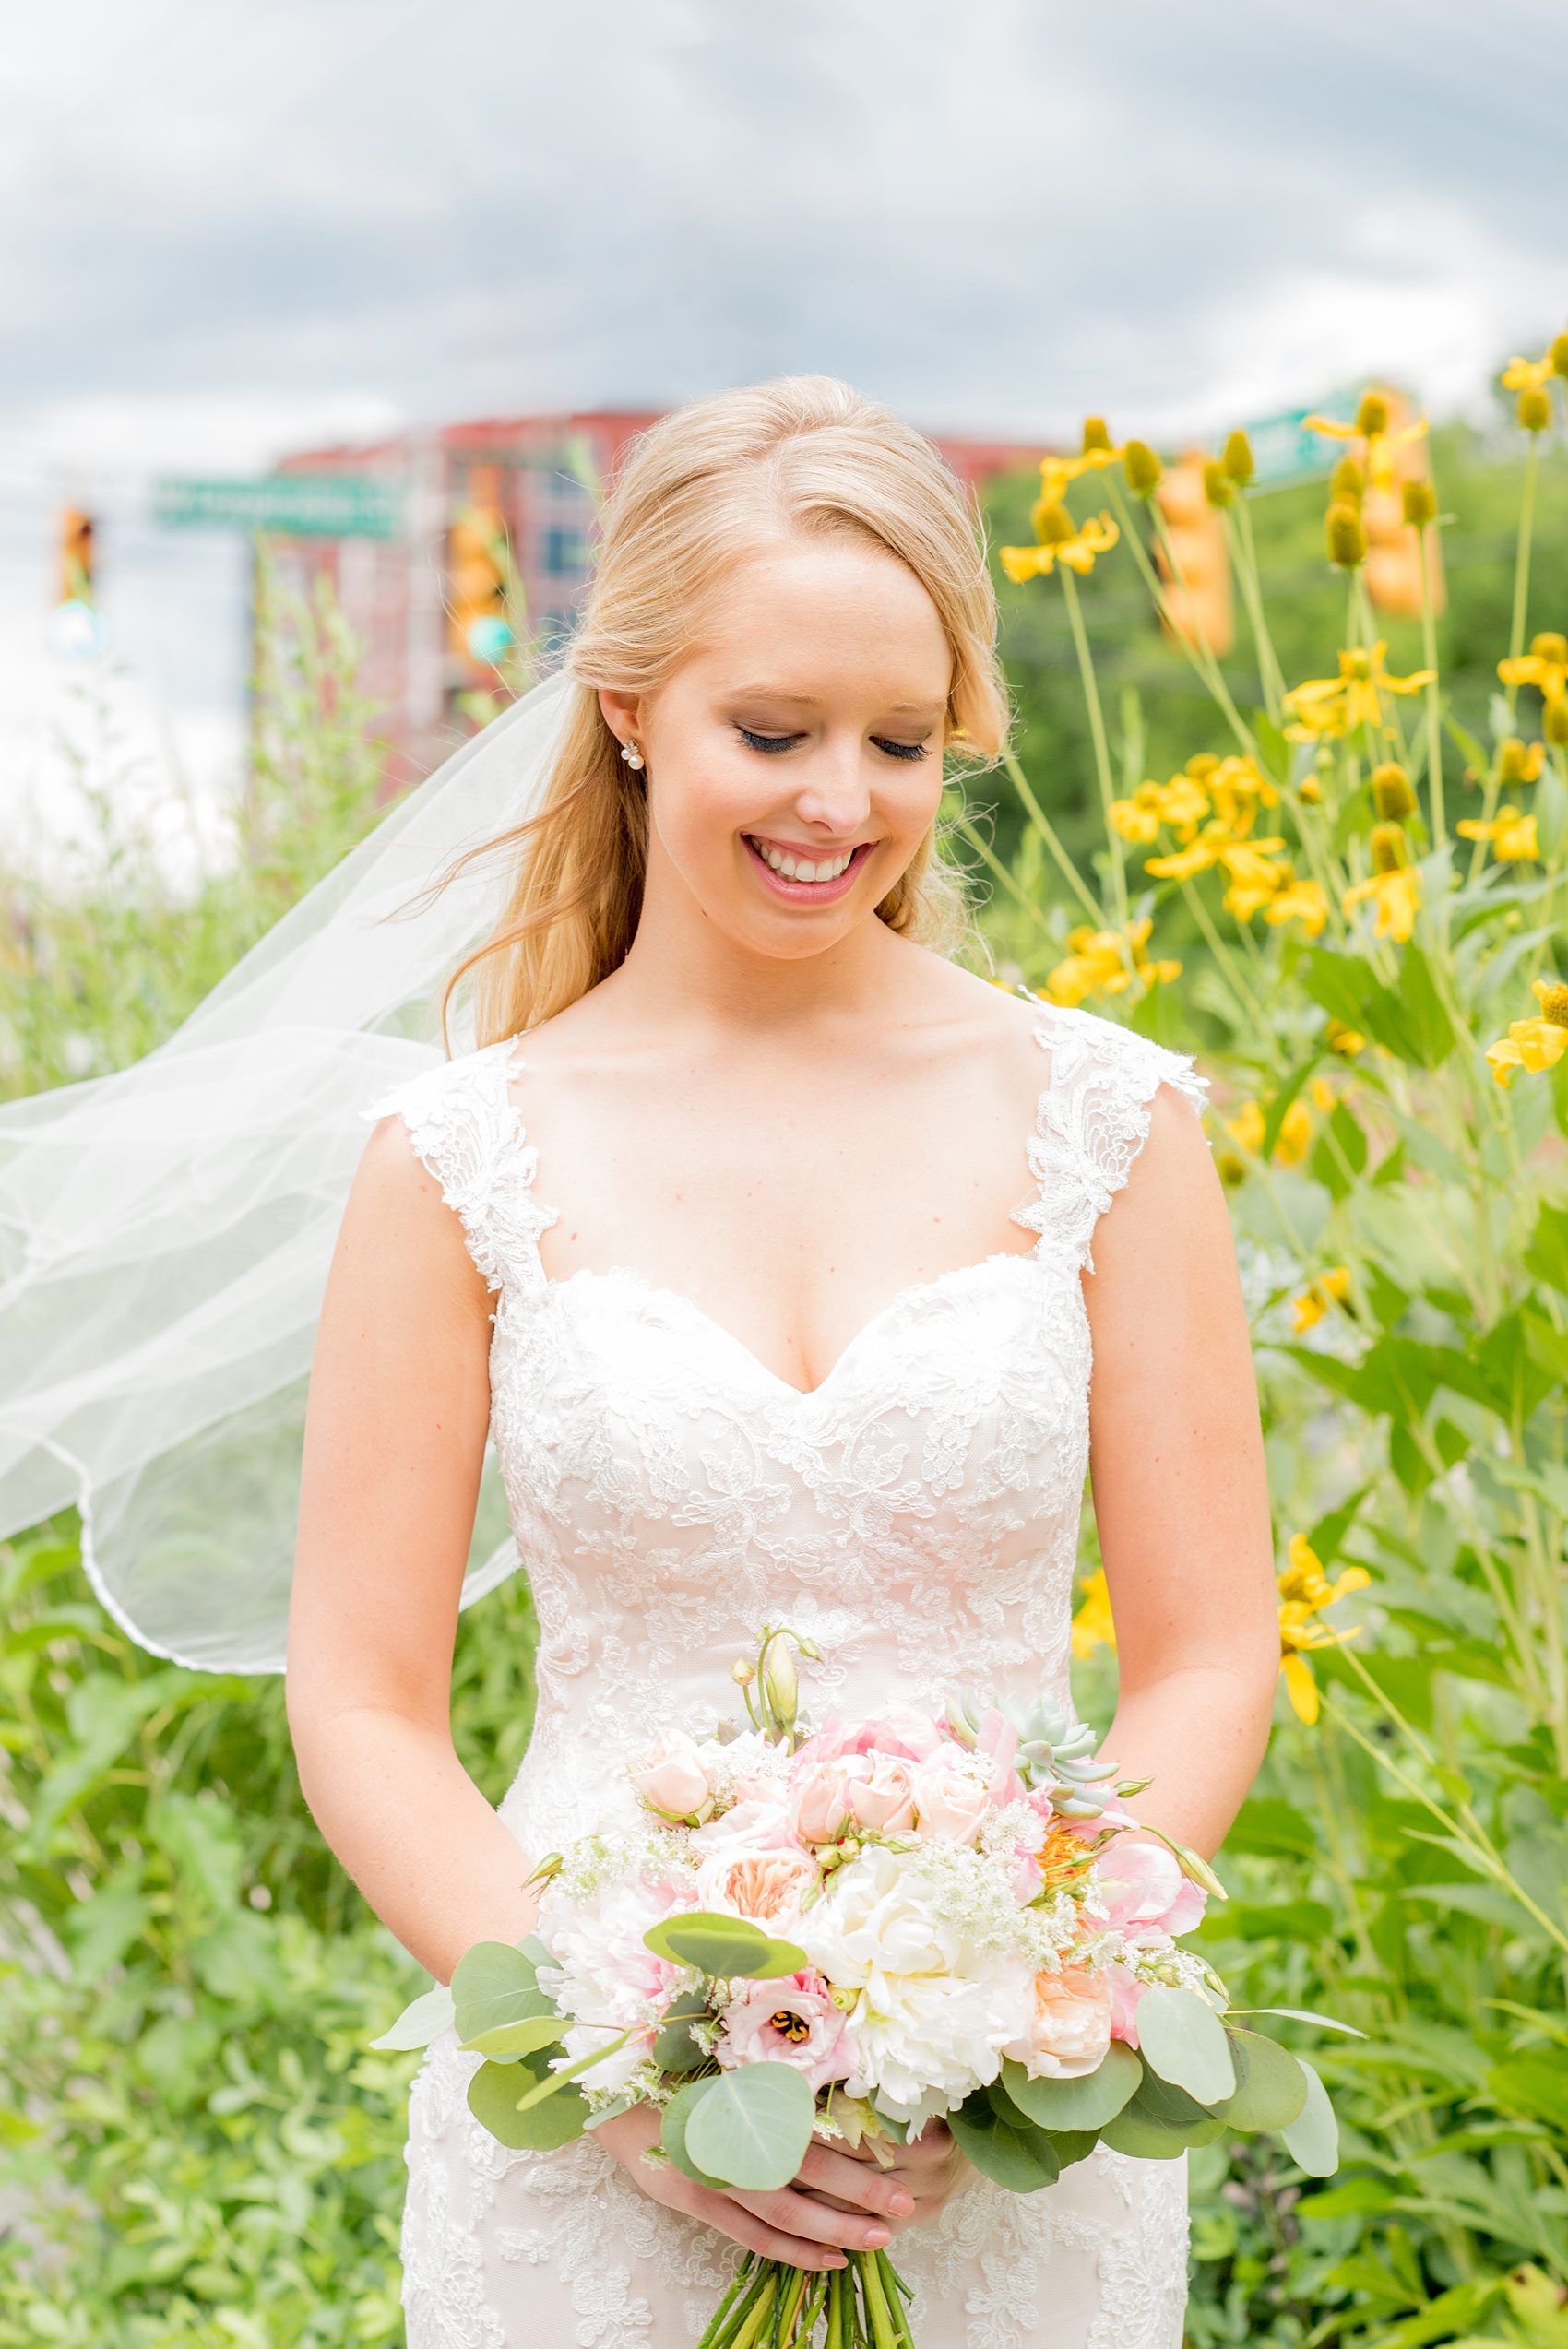 Mikkel Paige Photography photos from a wedding in Durham, North Carolina. Picture of the bride with yellow flowers behind her and veil blowing in the wind. She held a bouquet with peonies, succulents and eucalyptus.